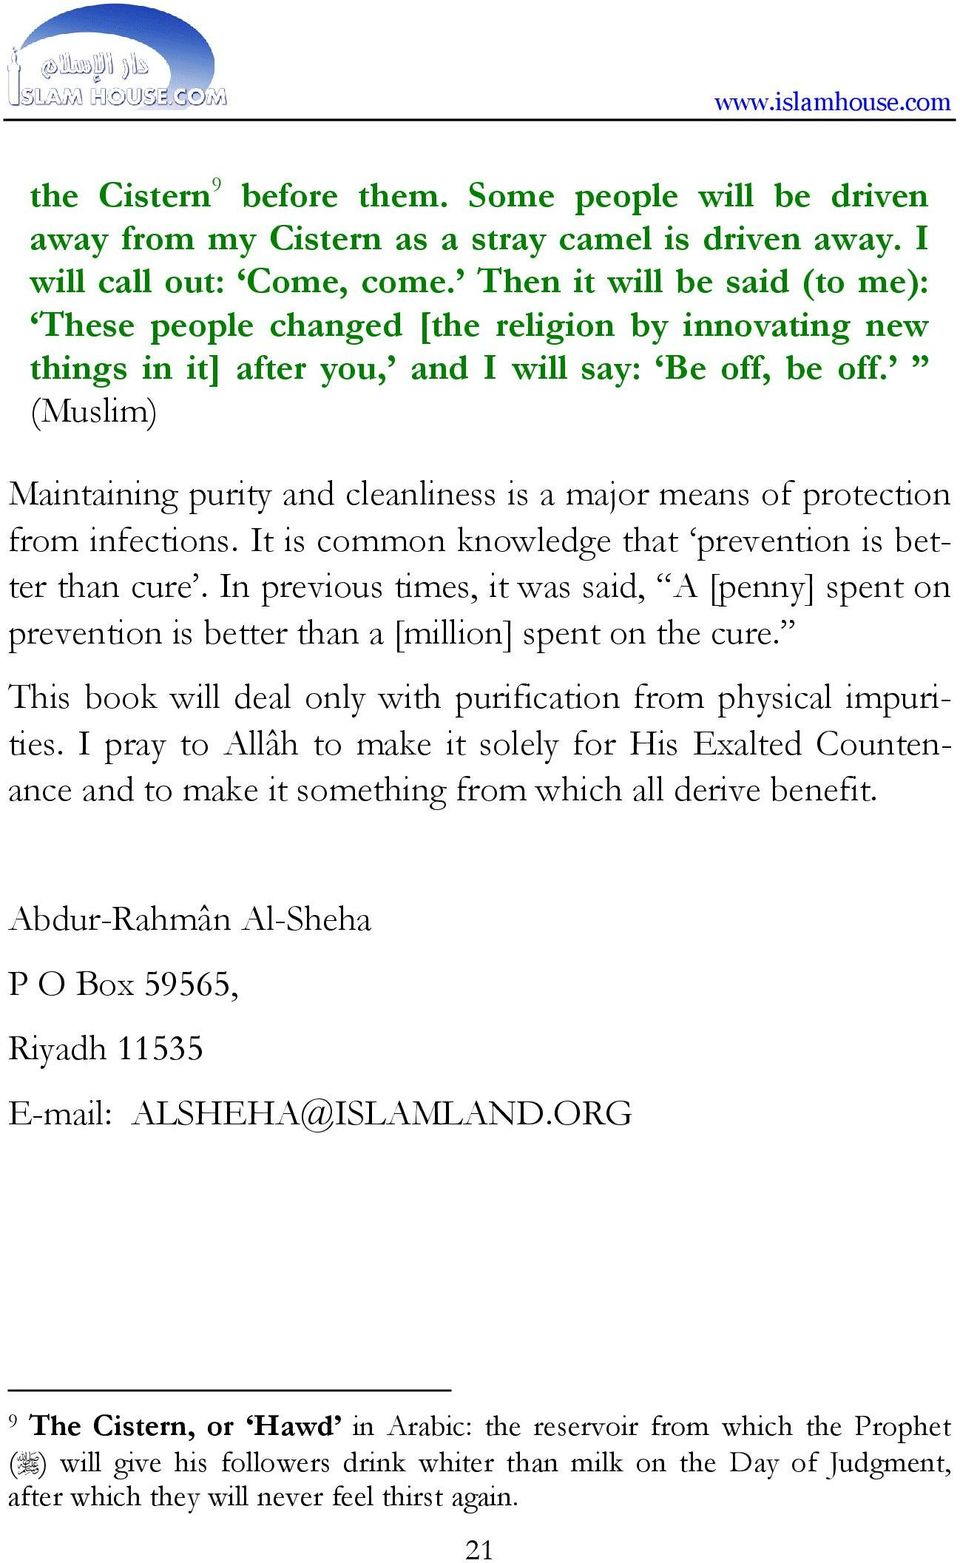 (Muslim) Maintaining purity and cleanliness is a major means of protection from infections. It is common knowledge that prevention is better than cure.